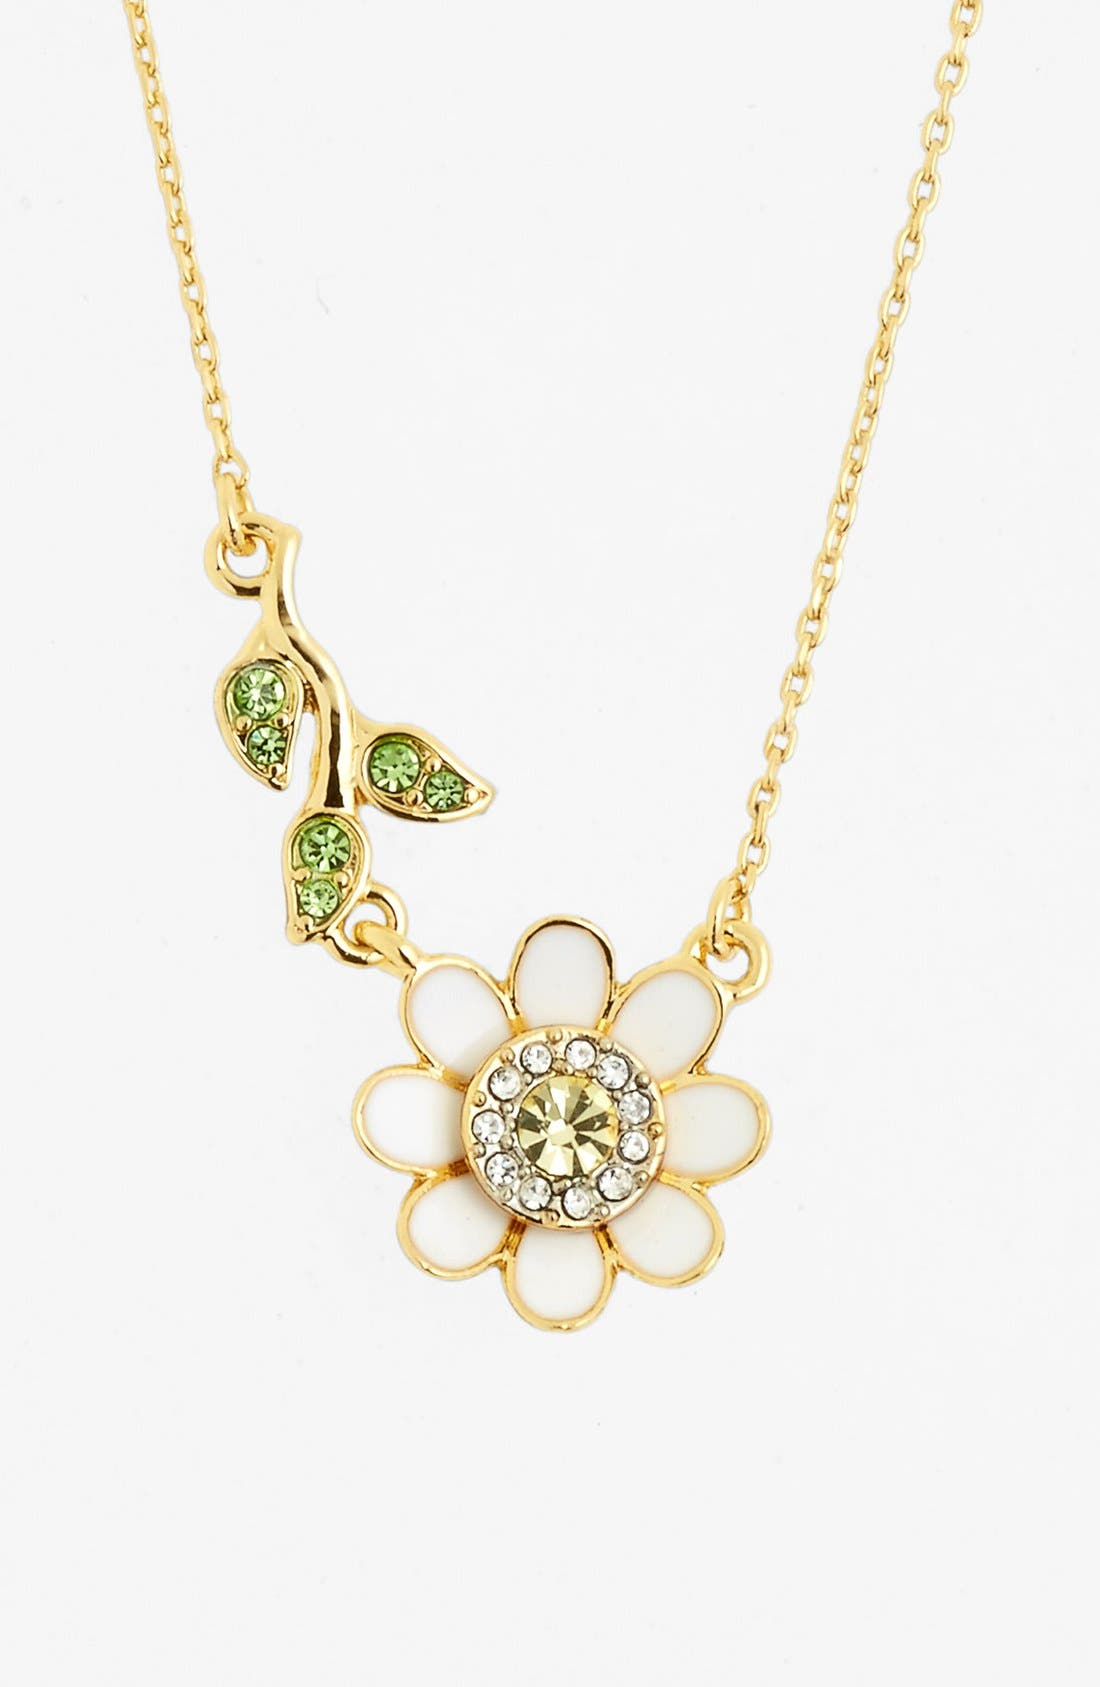 Alternate Image 1 Selected - Juicy Couture 'Juicy in Bloom' Daisy Pendant Necklace